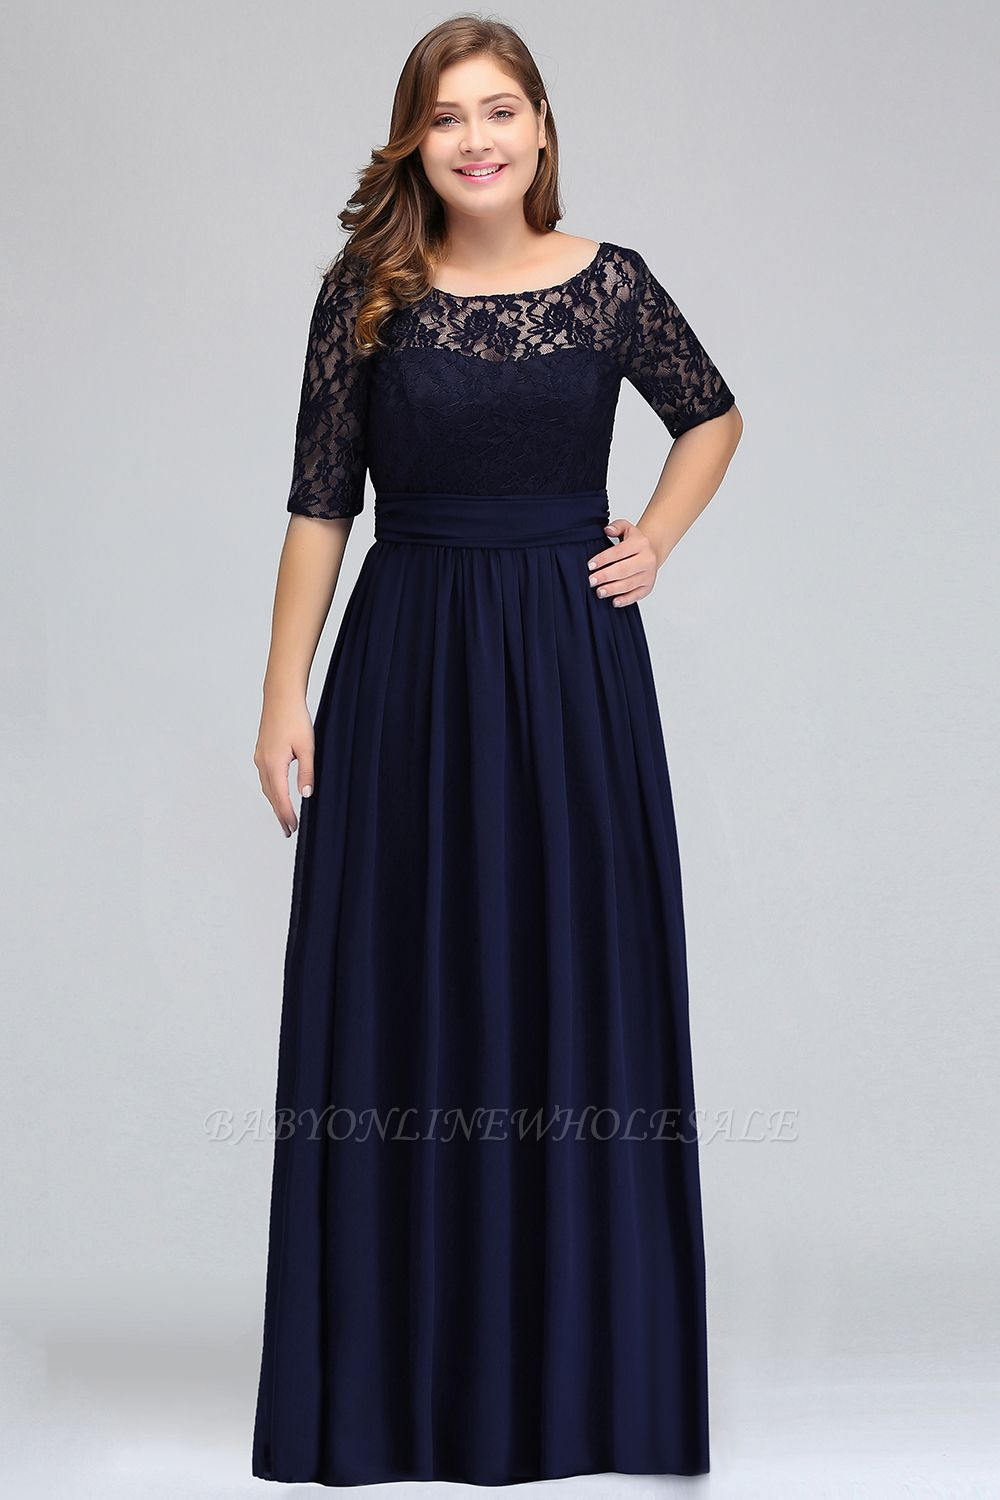 IVANNA | A-Line Scoop Half Sleeves Long Navy Blue Plus size bridesmaid Dresses with Lace